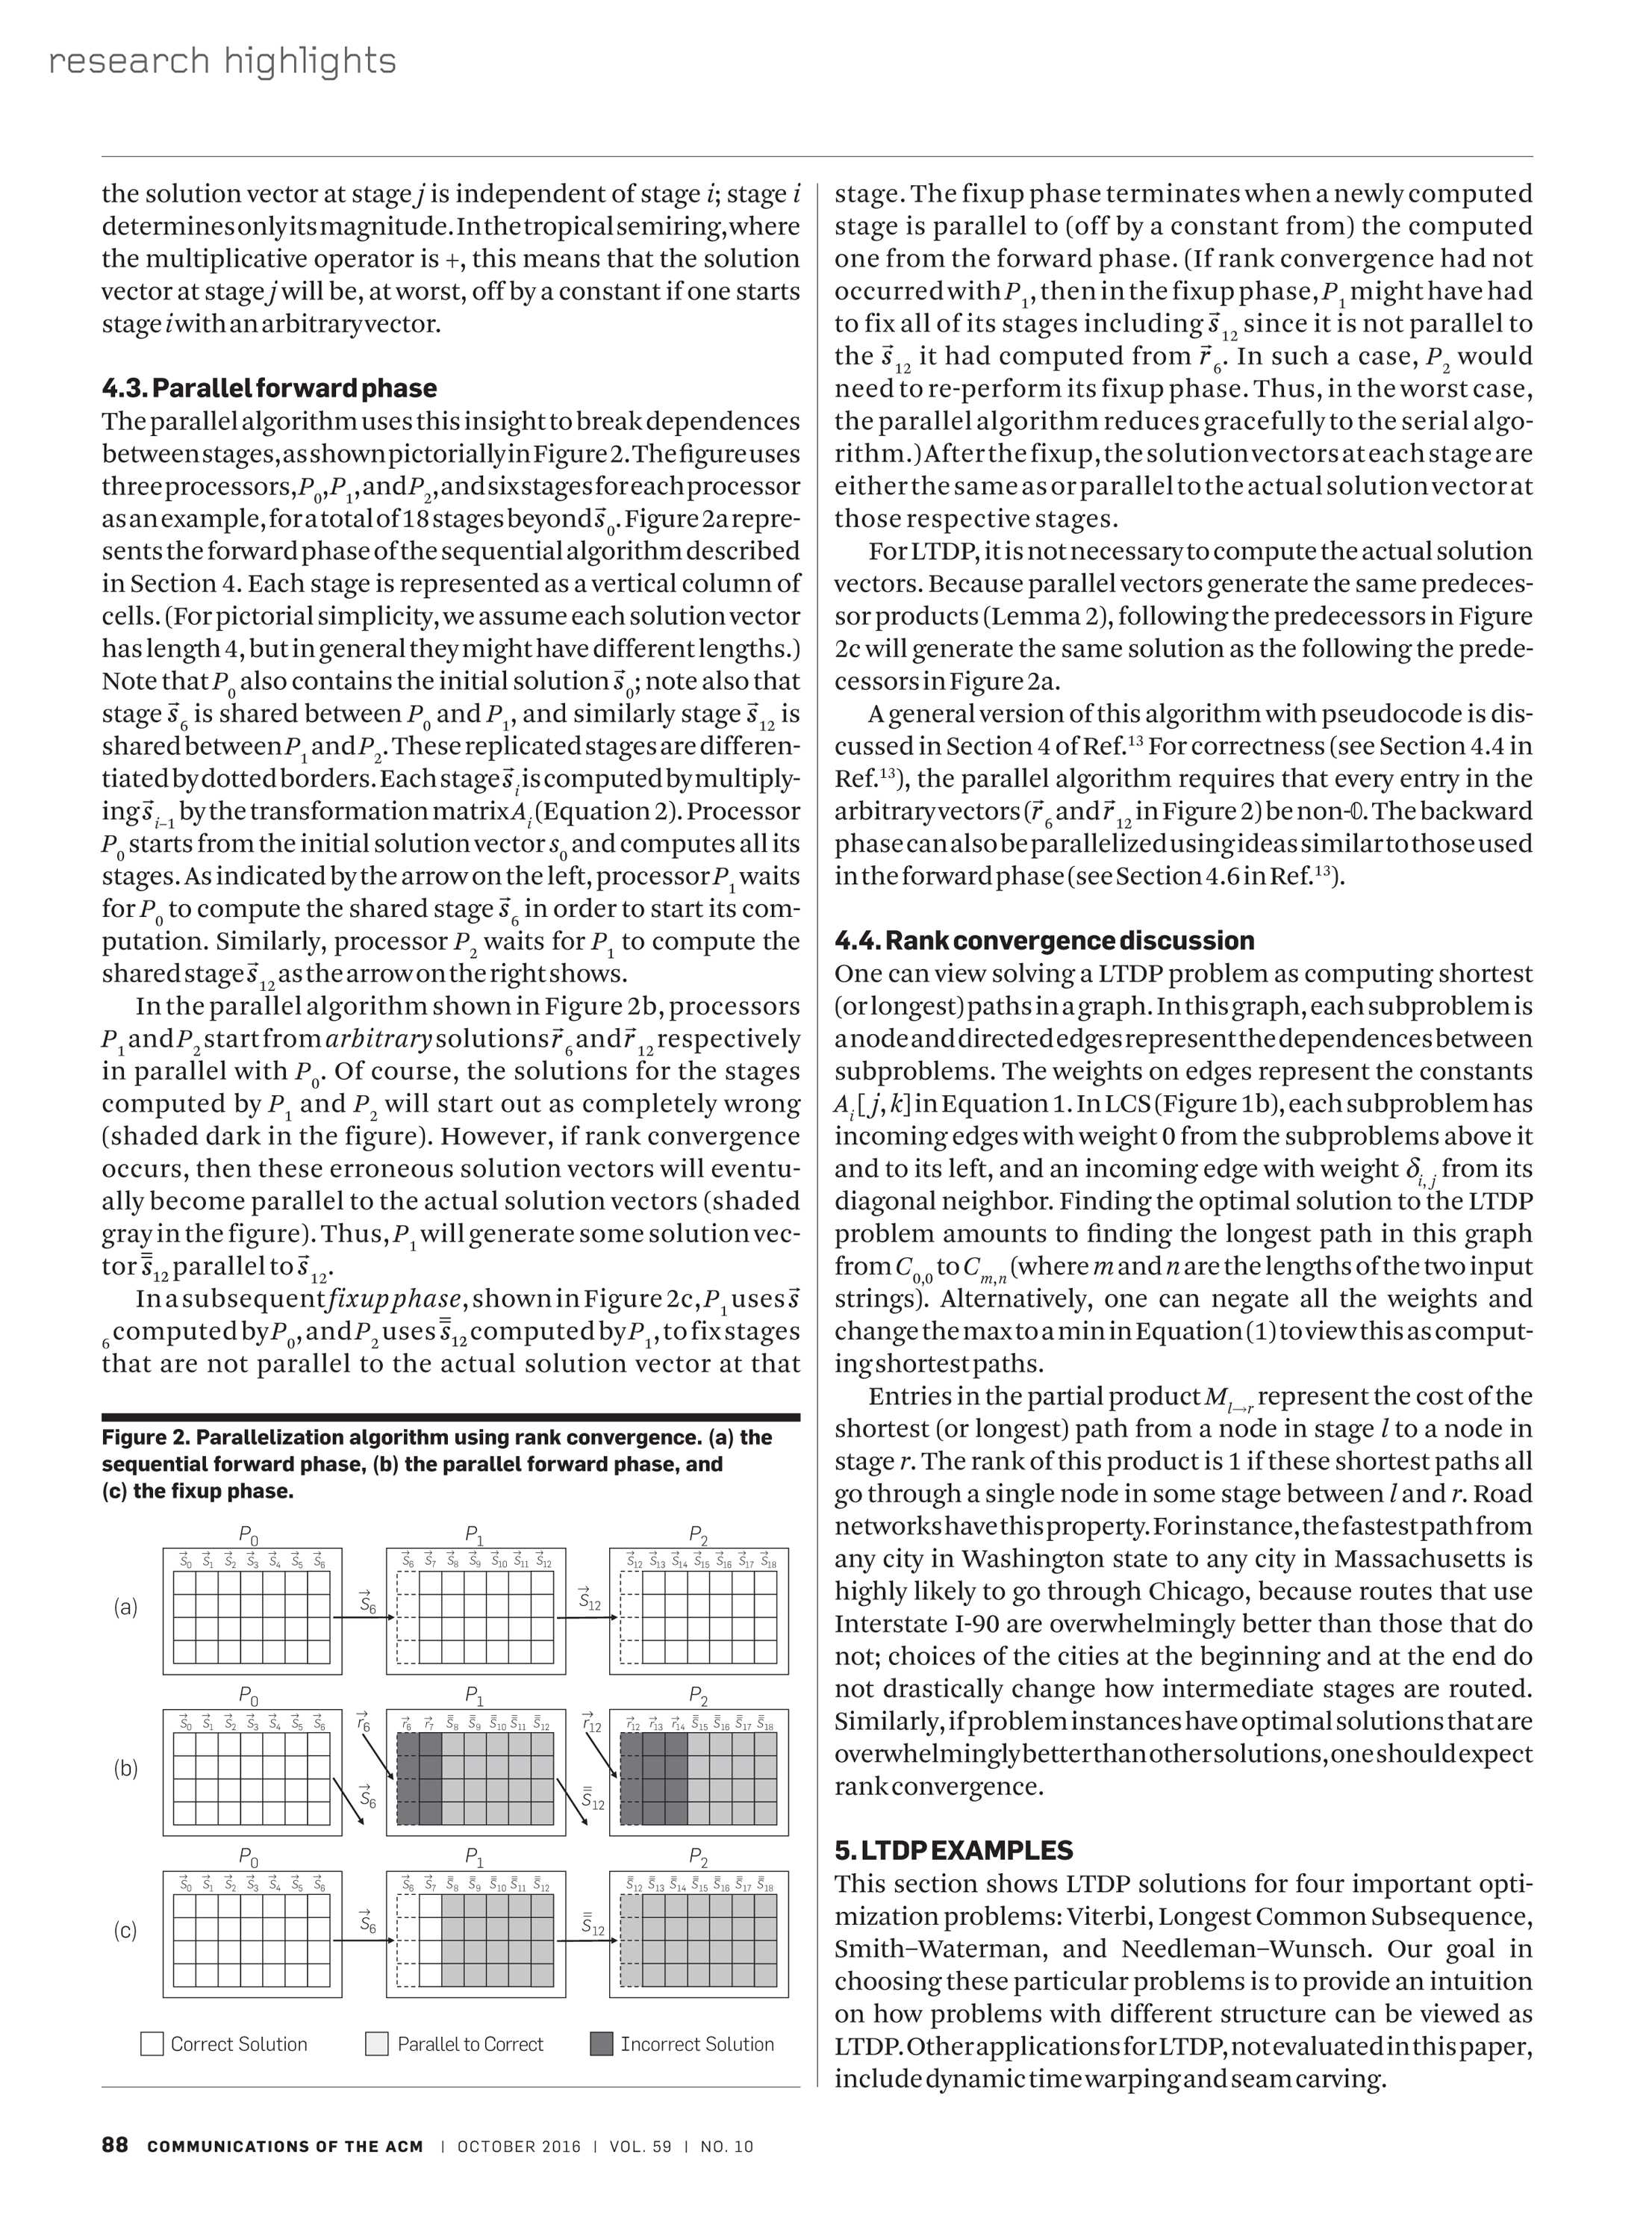 Communications of the ACM - October 2016 - page 88